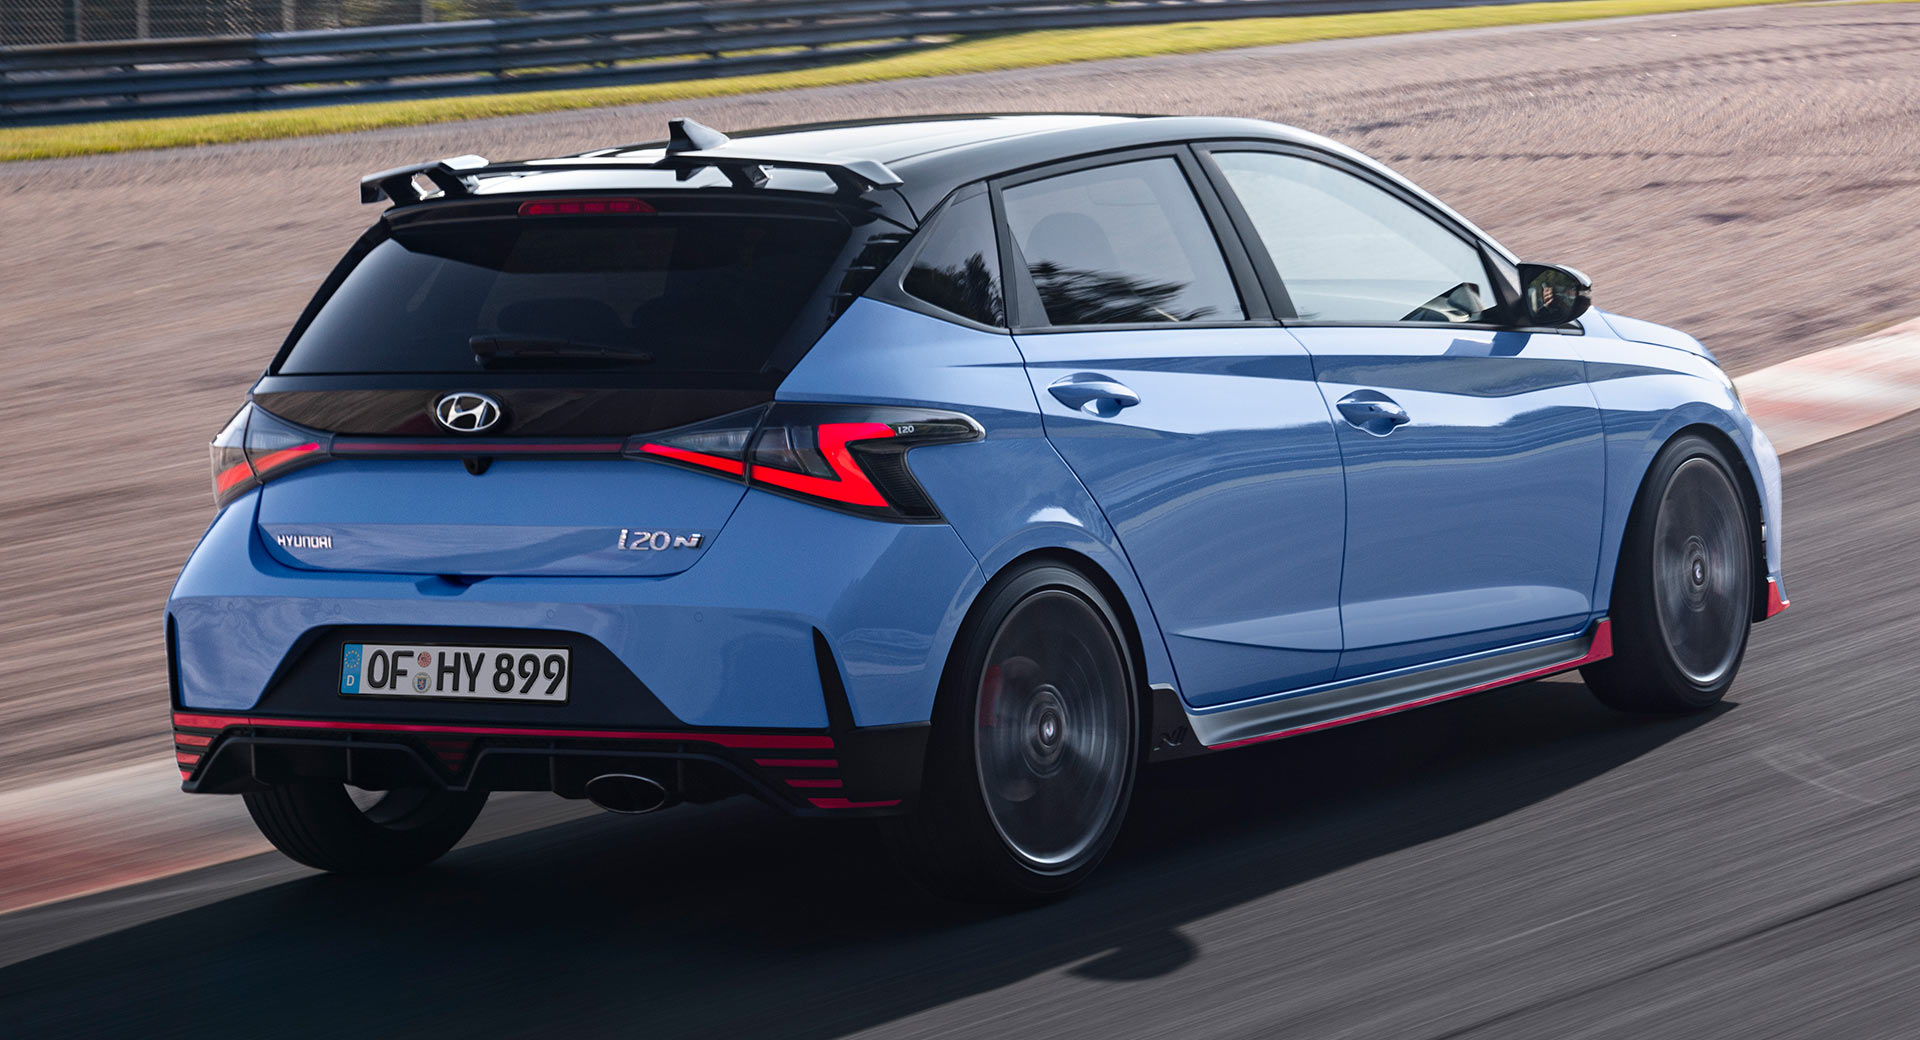 Hyundai i20 N Is Here To Shake Up The Hot Hatch Market